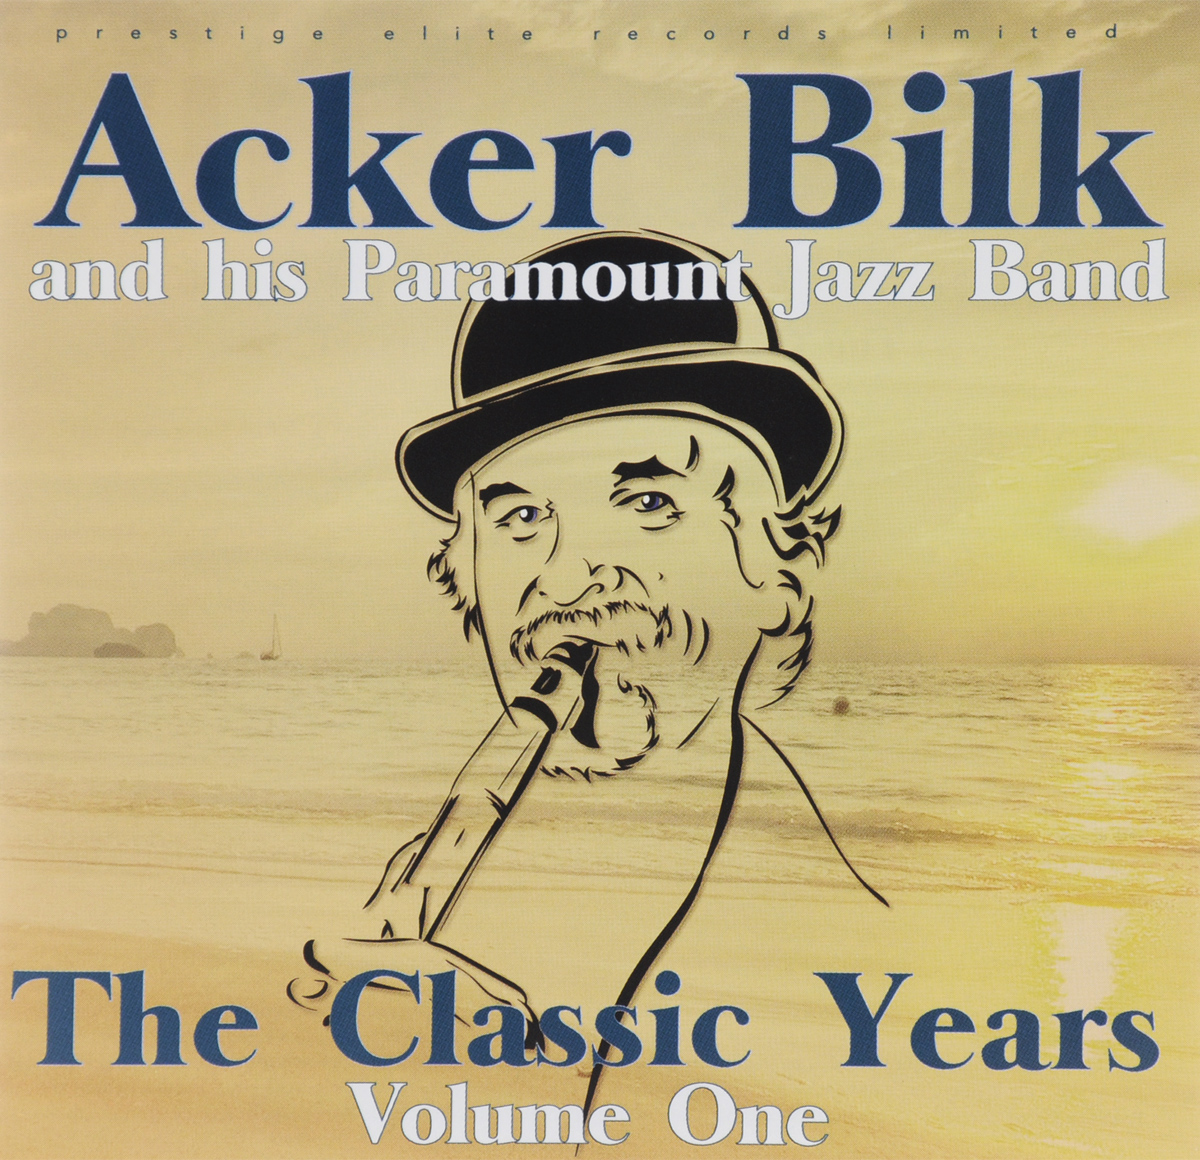 Acker Bilk and His Paramount Jazz Band Acker Bilk and His Paramount Jazz Band. Classic Years. Volume One continuous band sealer 110v and 220v voltage avaliable